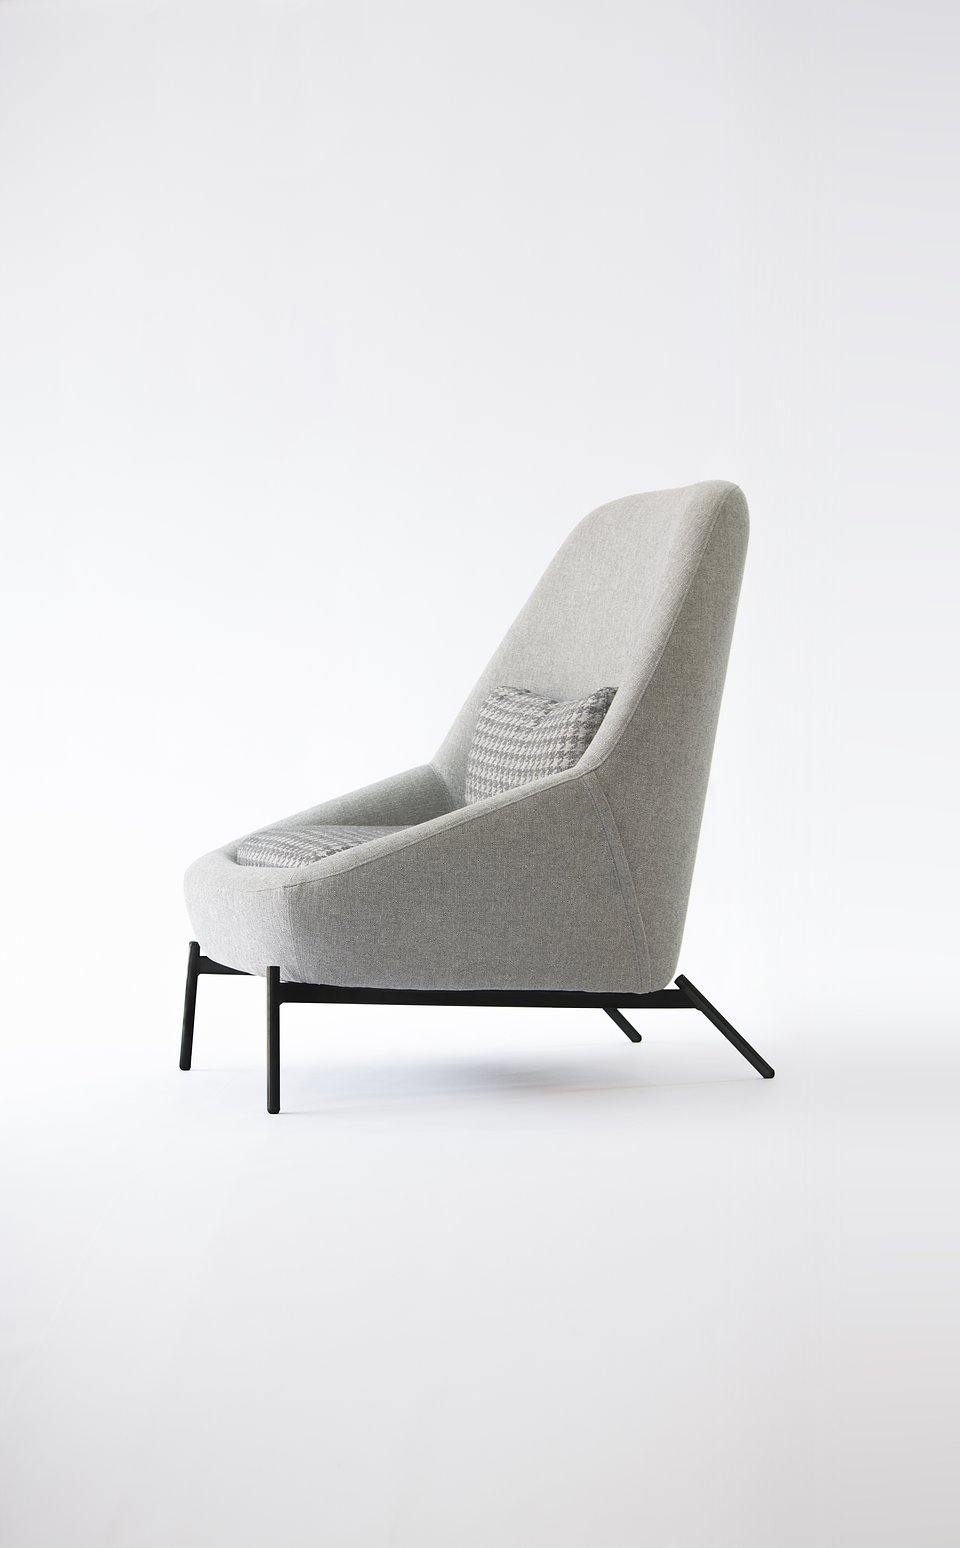 Gull armchair for Koo International (9).jpg